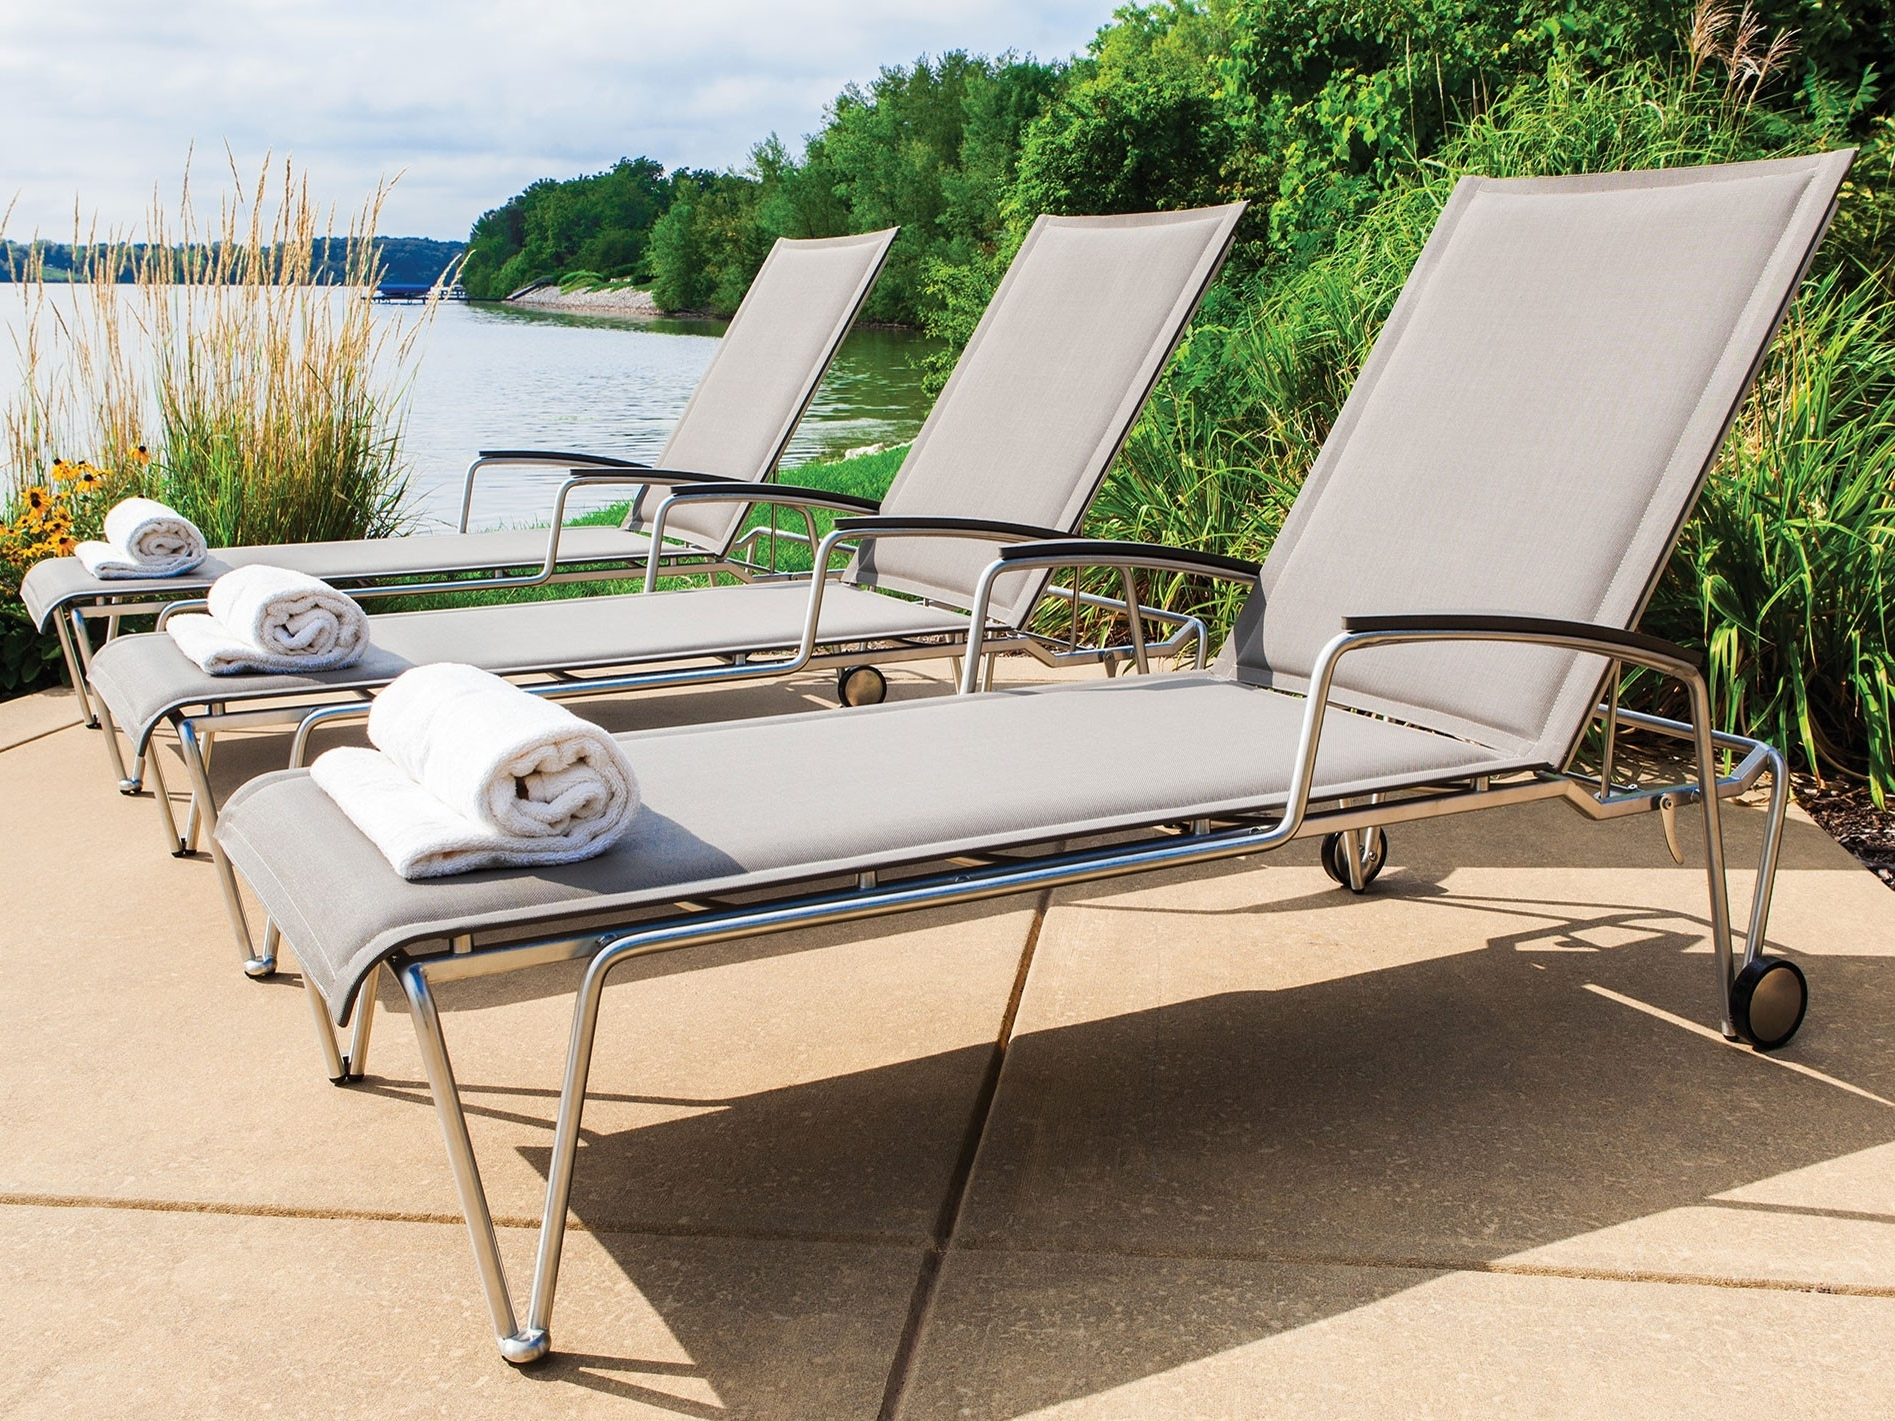 Favorite Pool Chaises With New Pool Chaise Lounge — Stereomiami Architechture : Make A Pool (View 6 of 15)